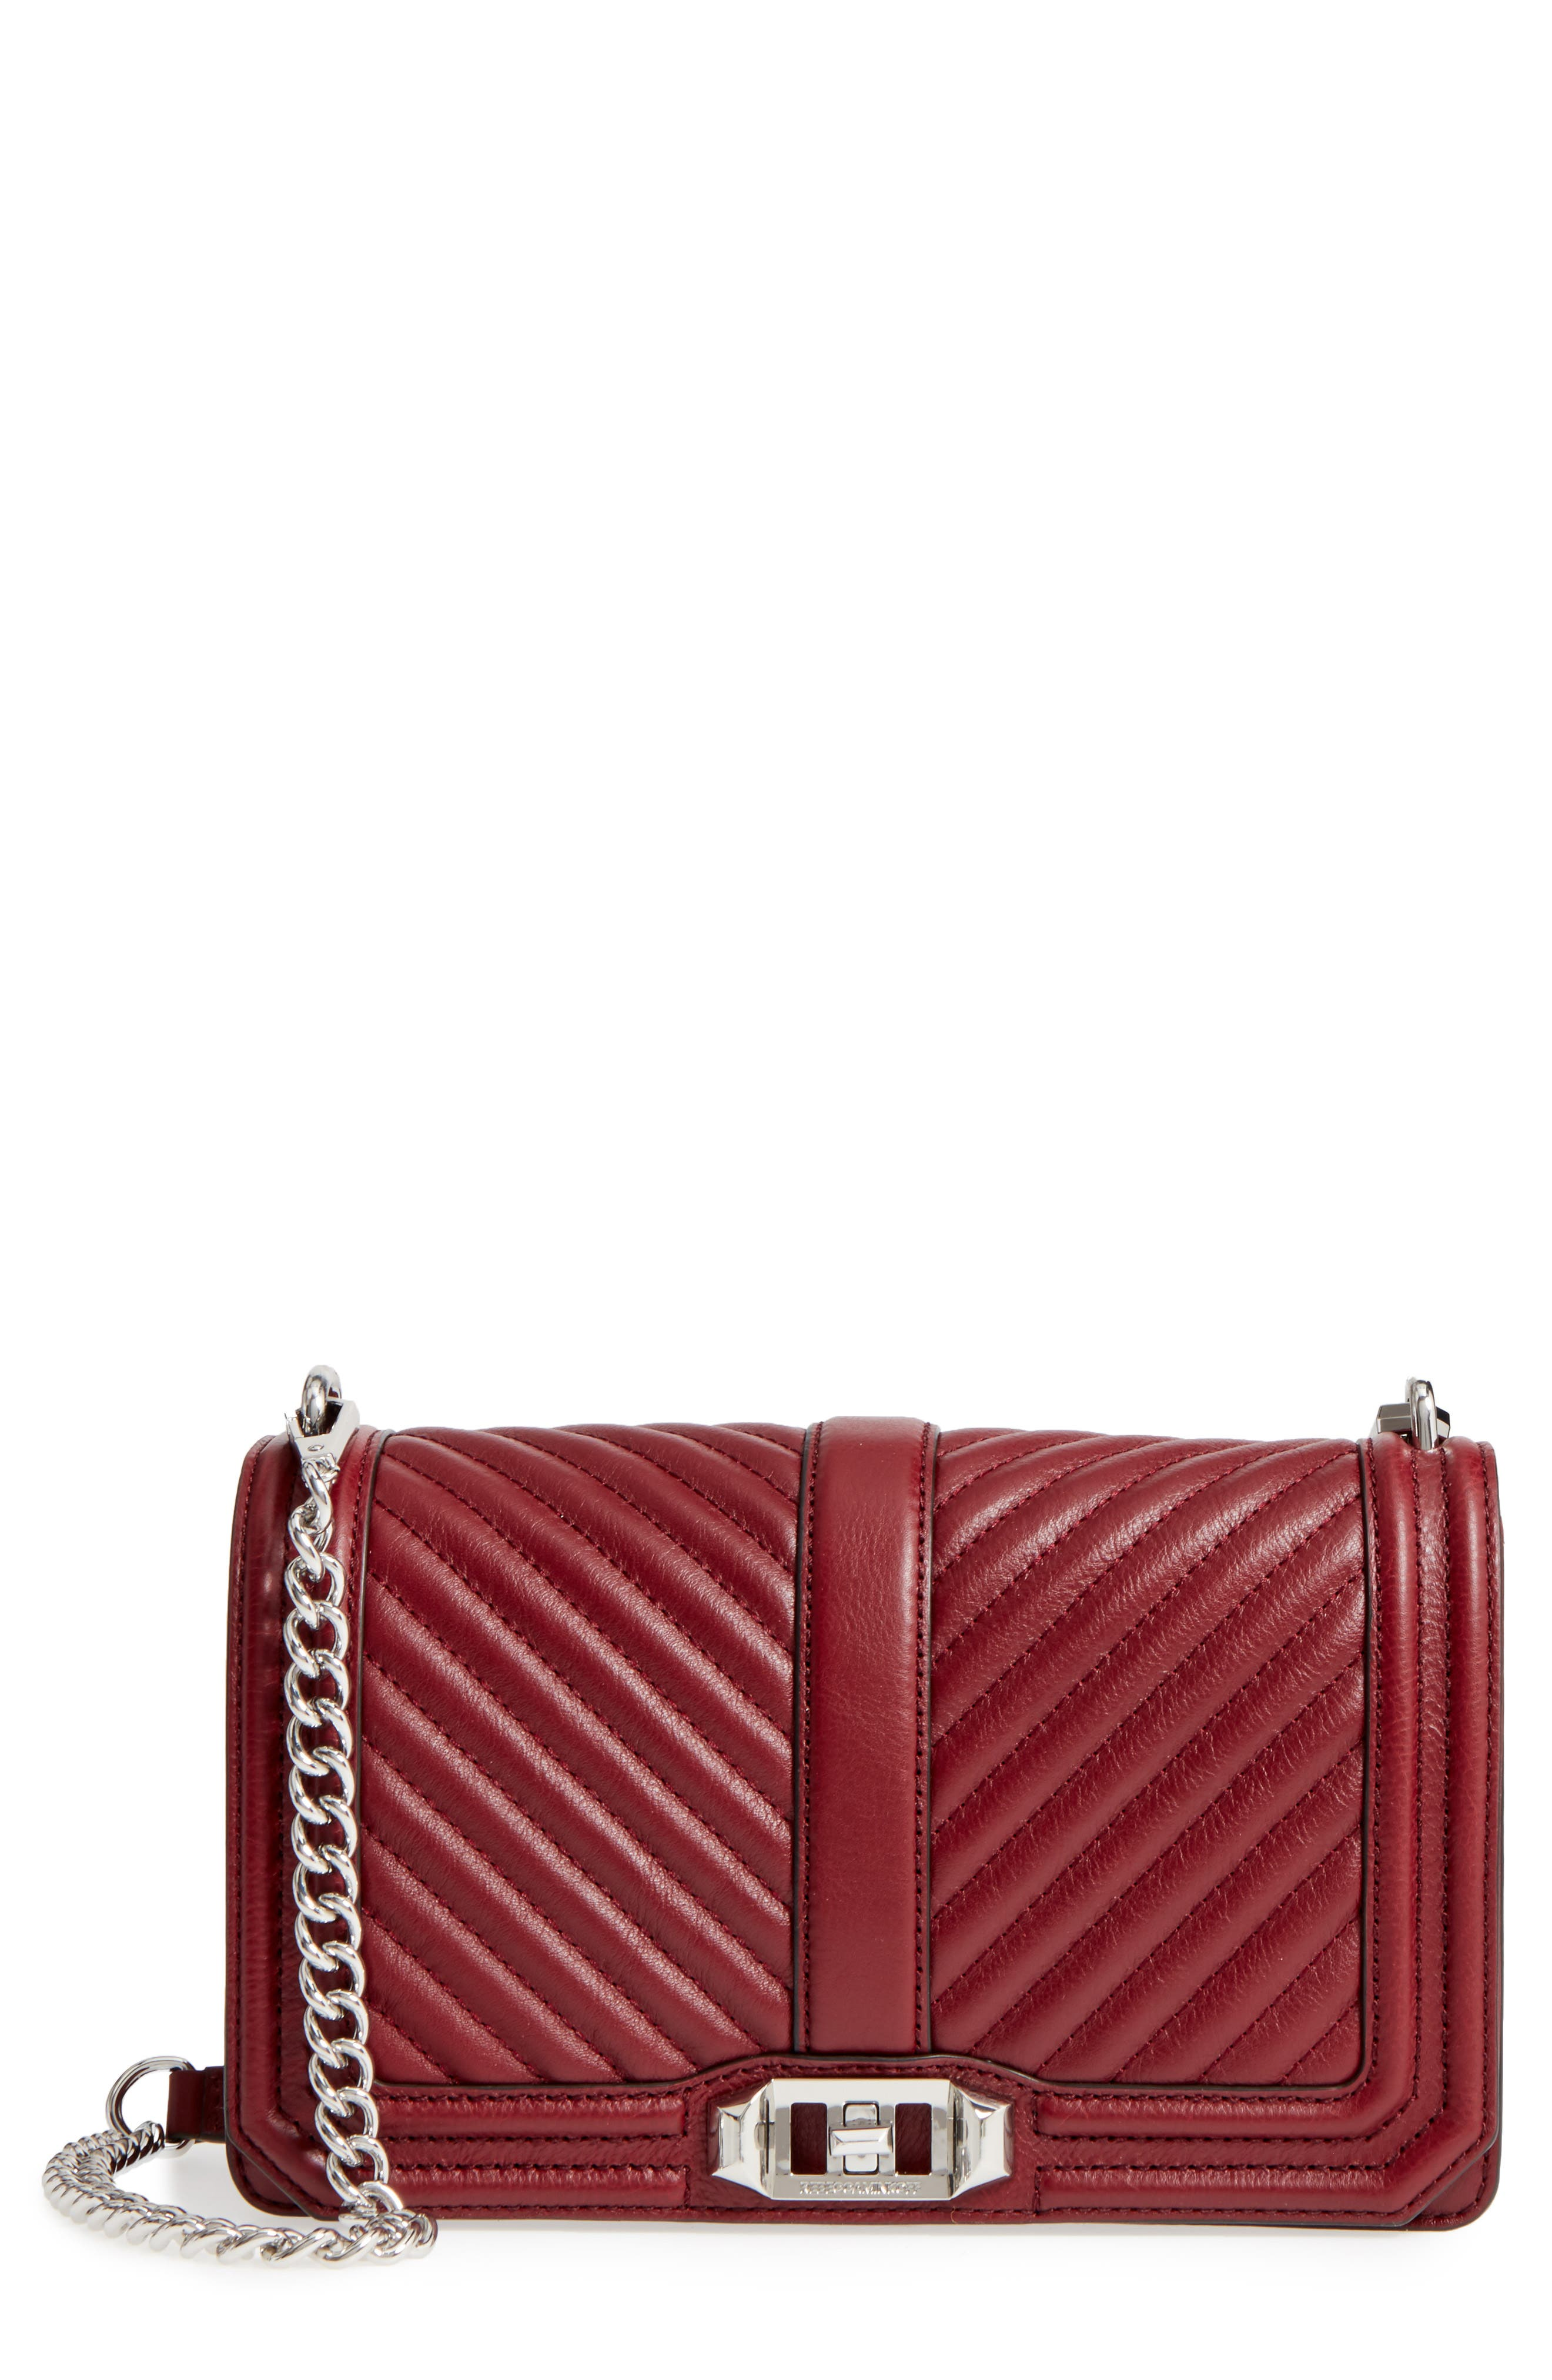 Rebecca Minkoff Love Leather Crossbody Bag